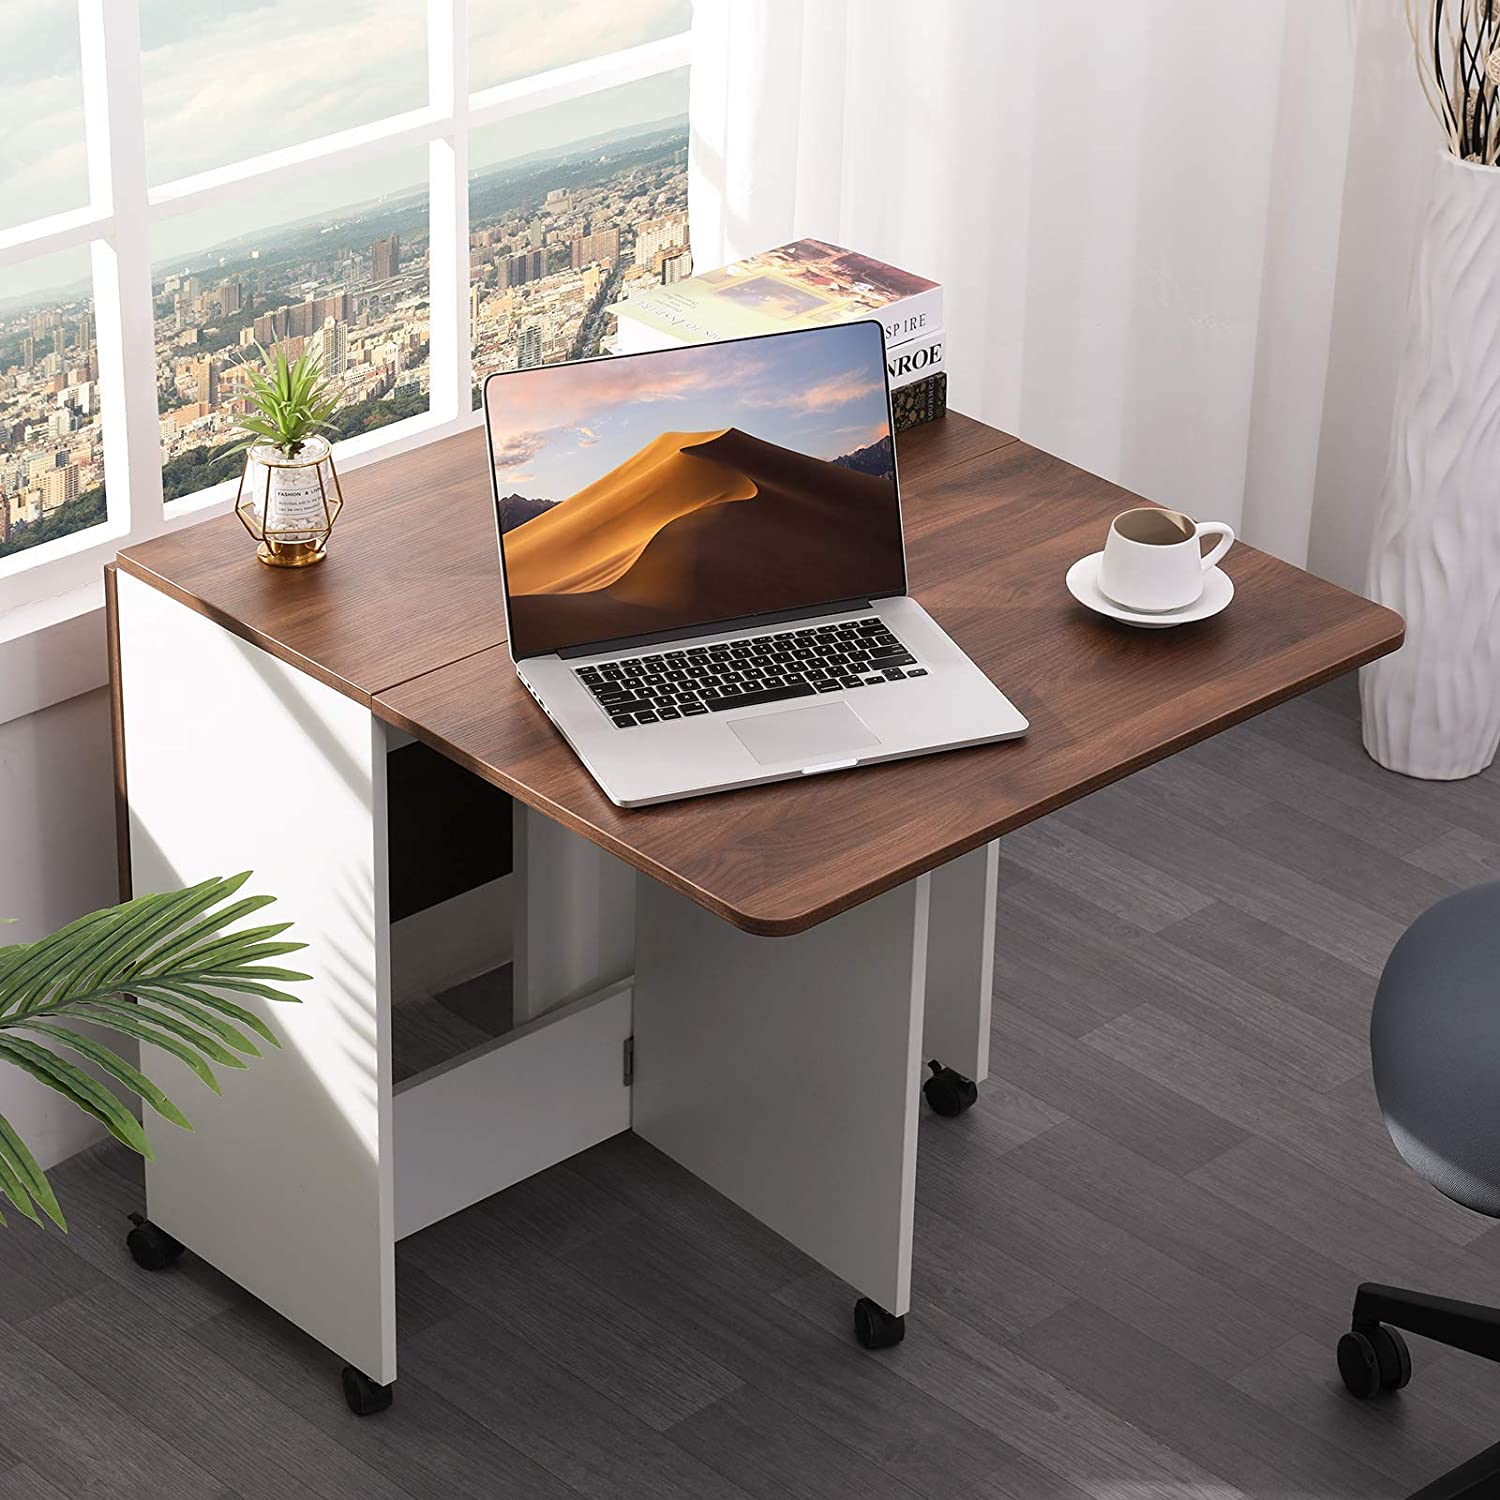 Vonanda Folding Dining Table, Versatile Office Desk with 6 Wheels for Small Room Apartment, Multifunction Expandable Table for Kitchen/Living Room/Bedroom, Walnut and White